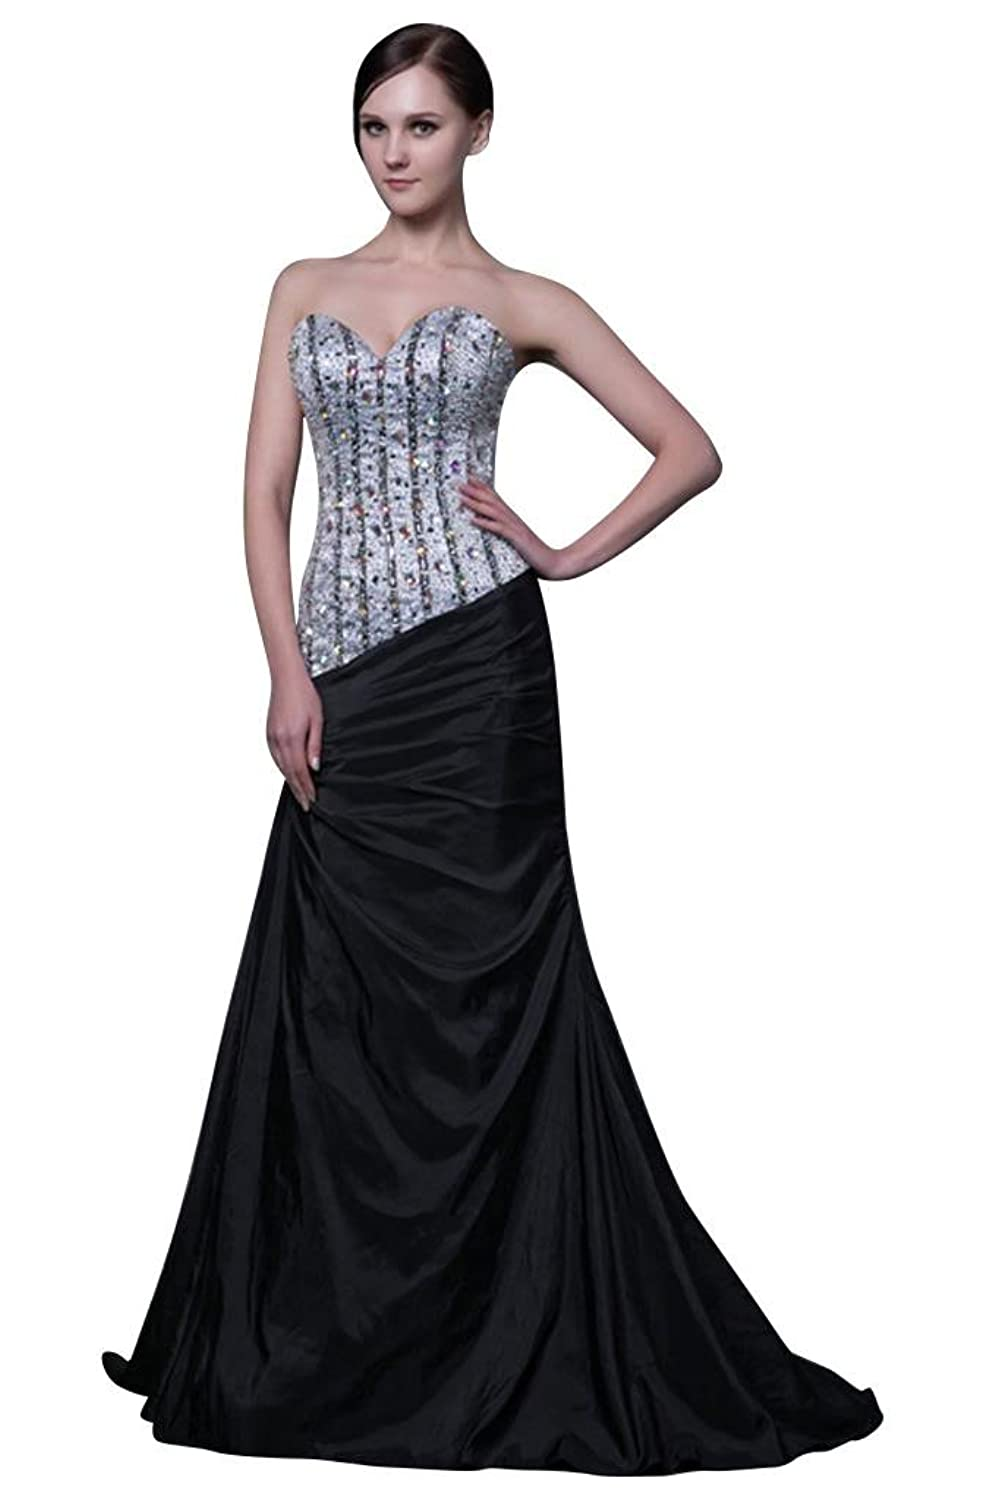 GEORGE BRIDE Latest Design Gorgeous Strapless Long Black Evening Gown